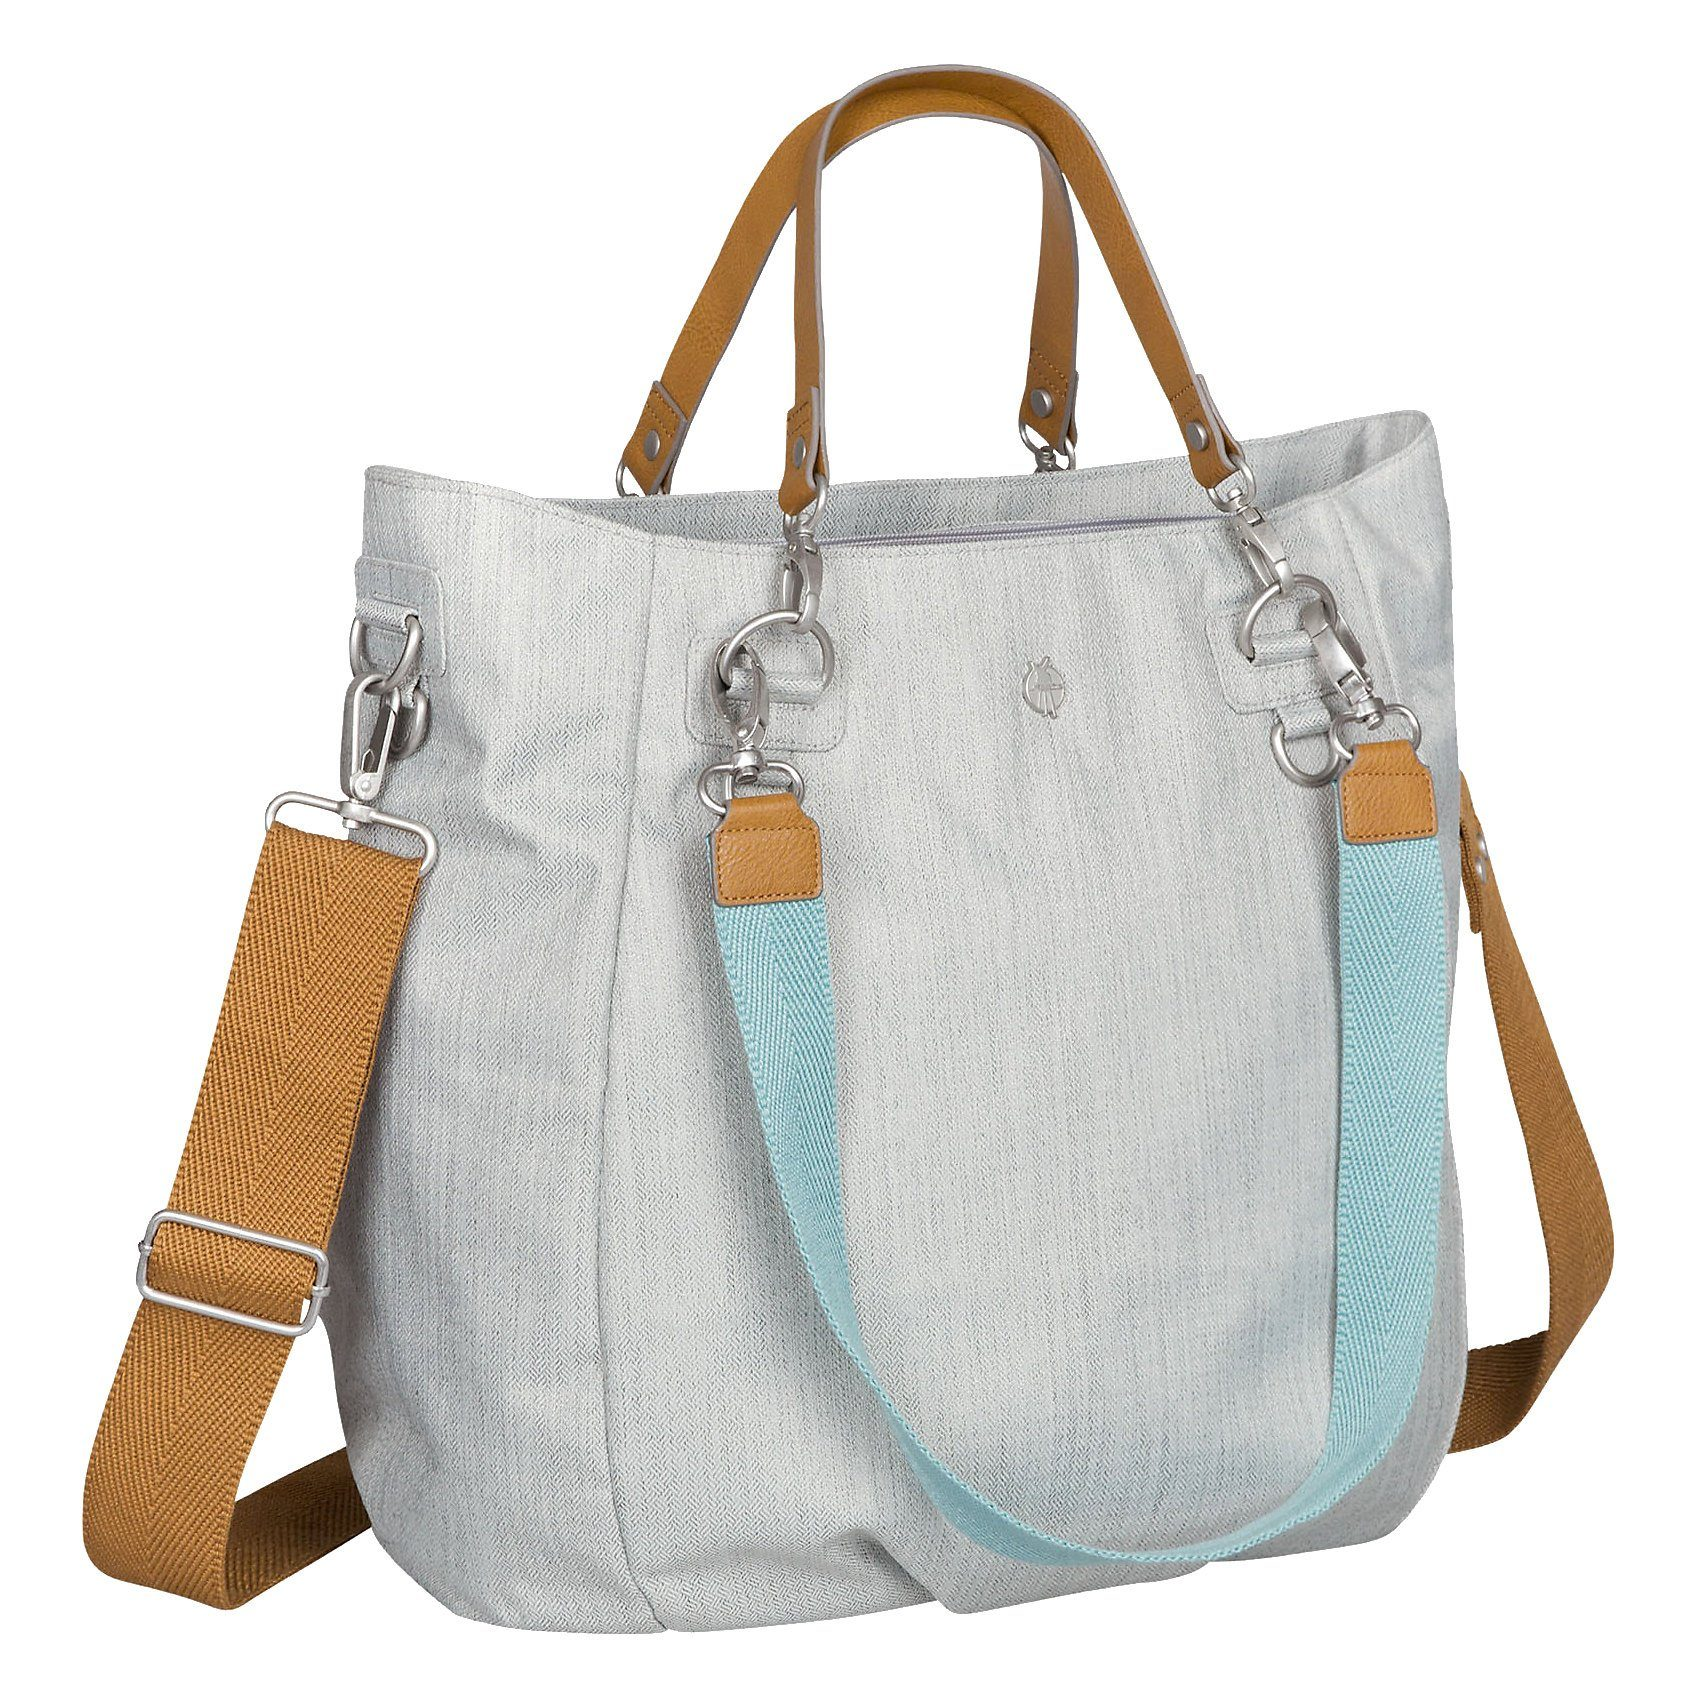 Lässig Wickeltasche Greenlabel, Mix´n Match Bag, Light grey